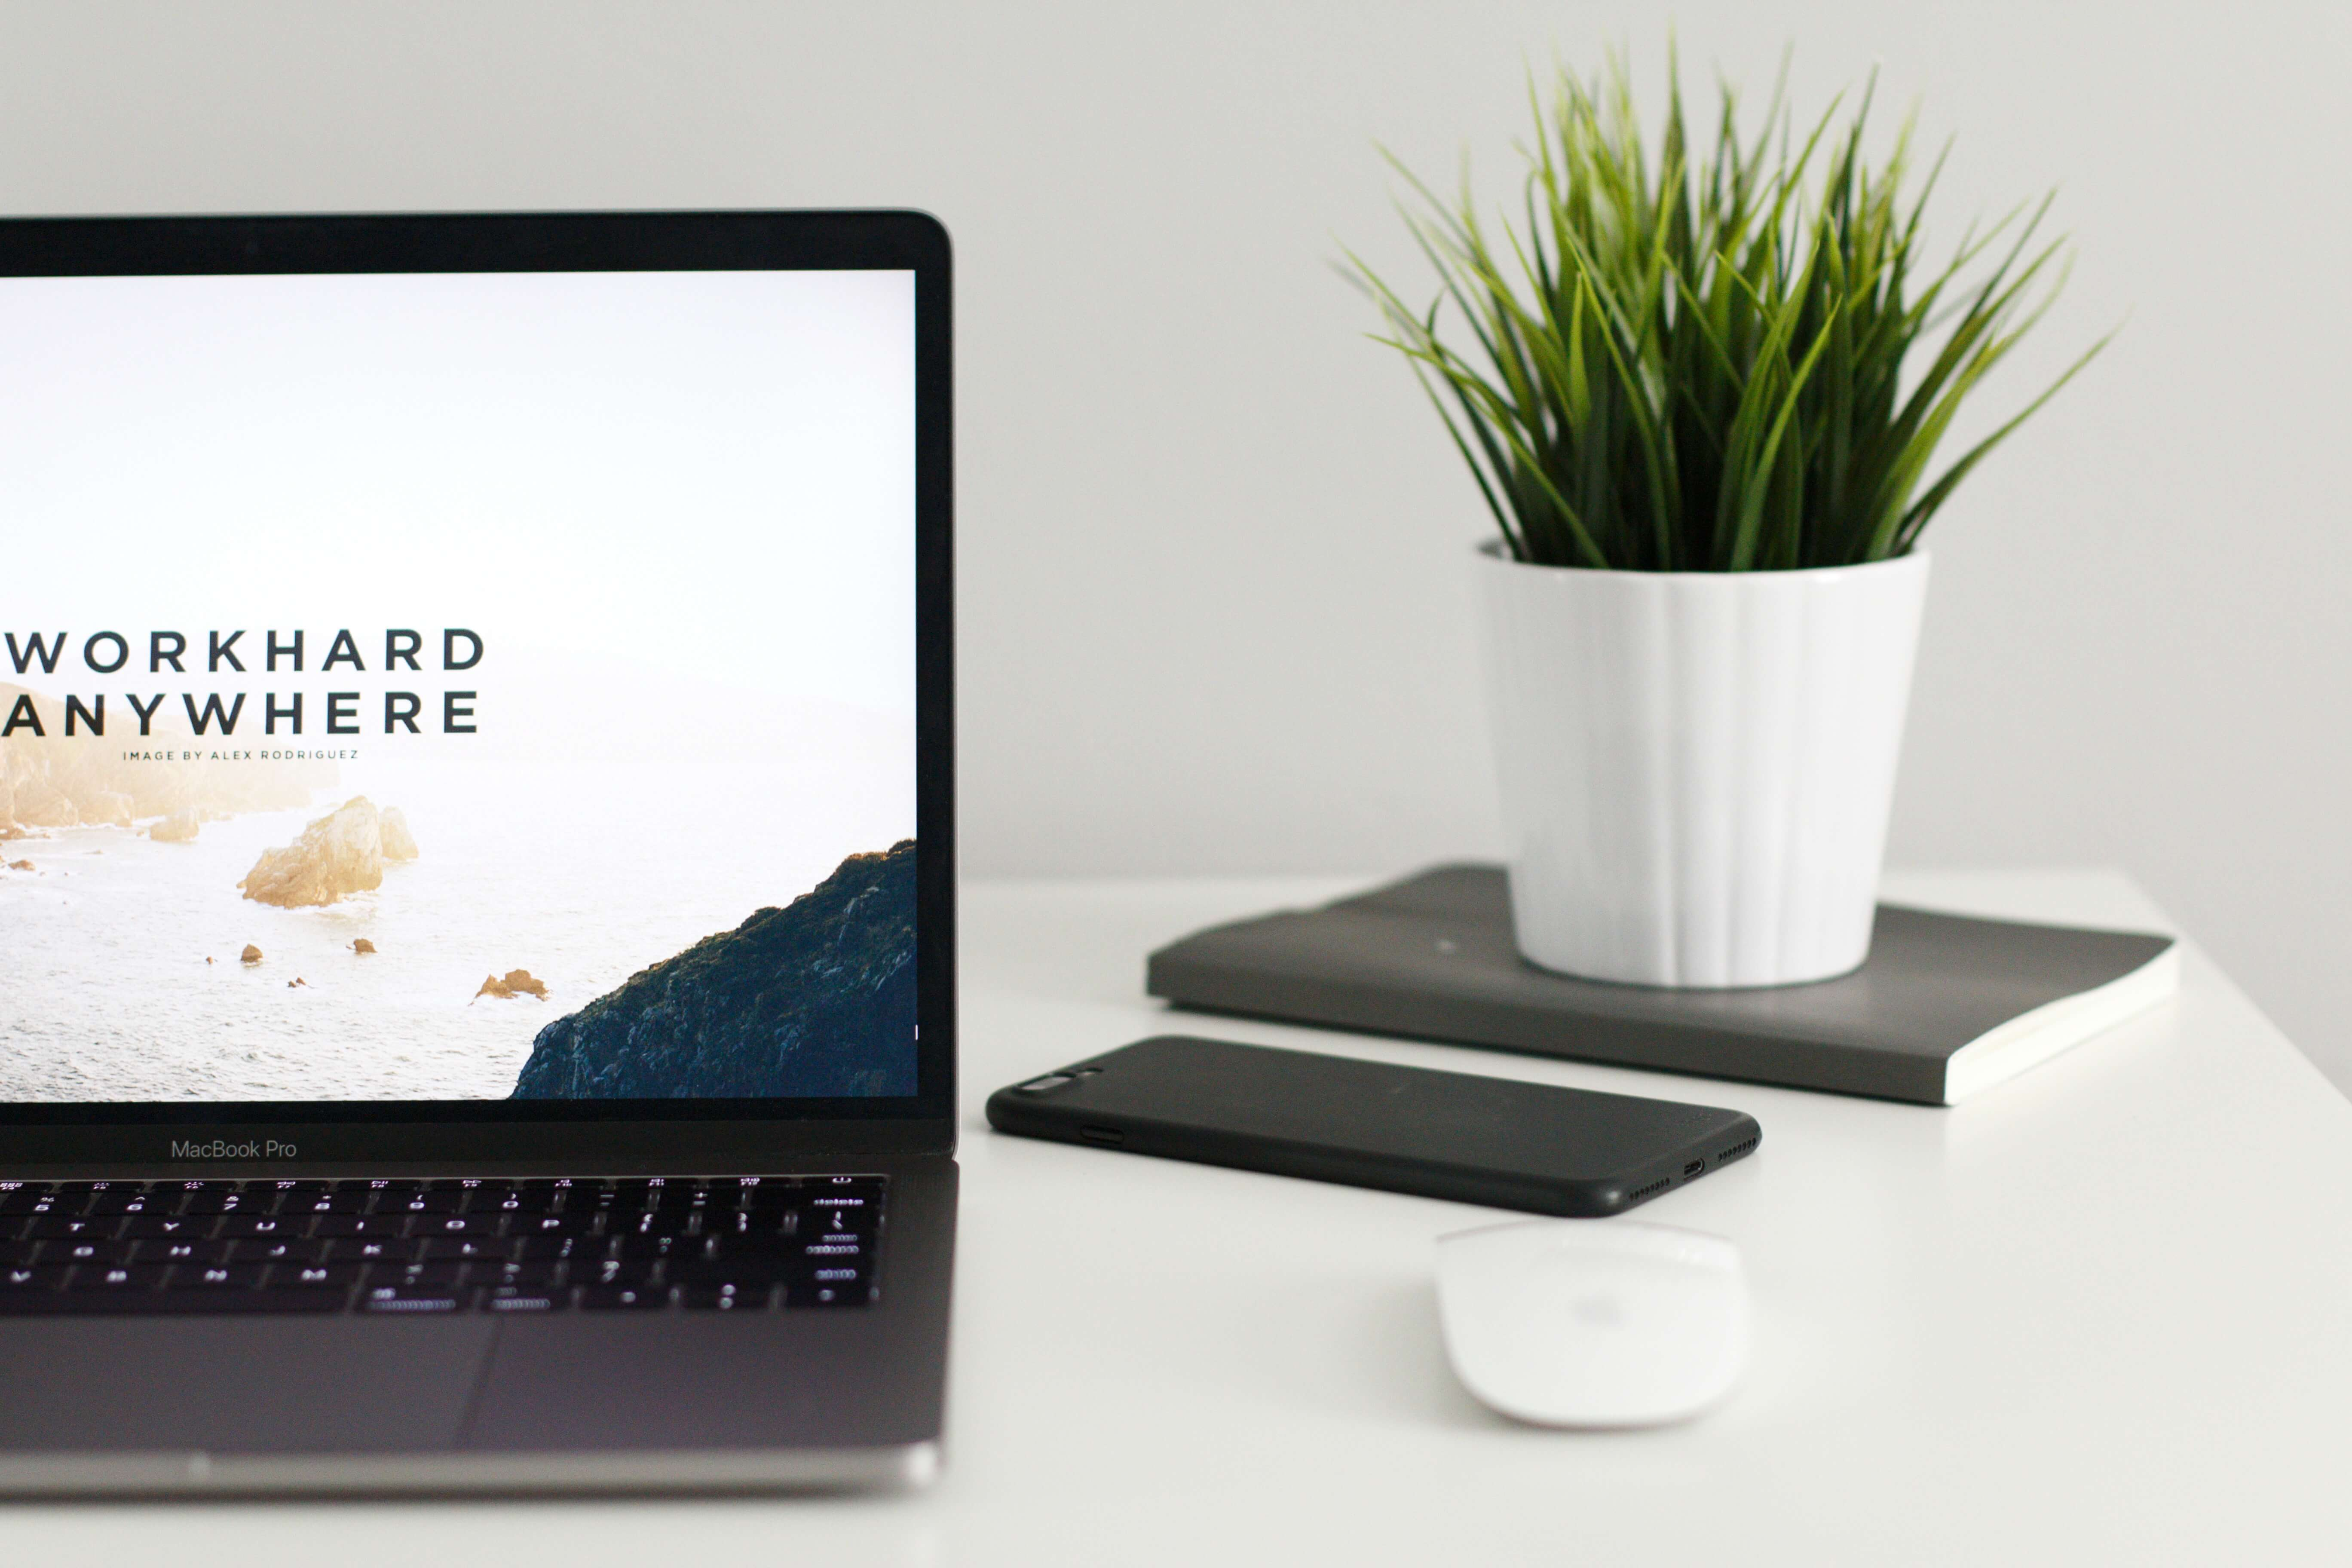 Find Coworking Space Apps - WorkHard Anywhere